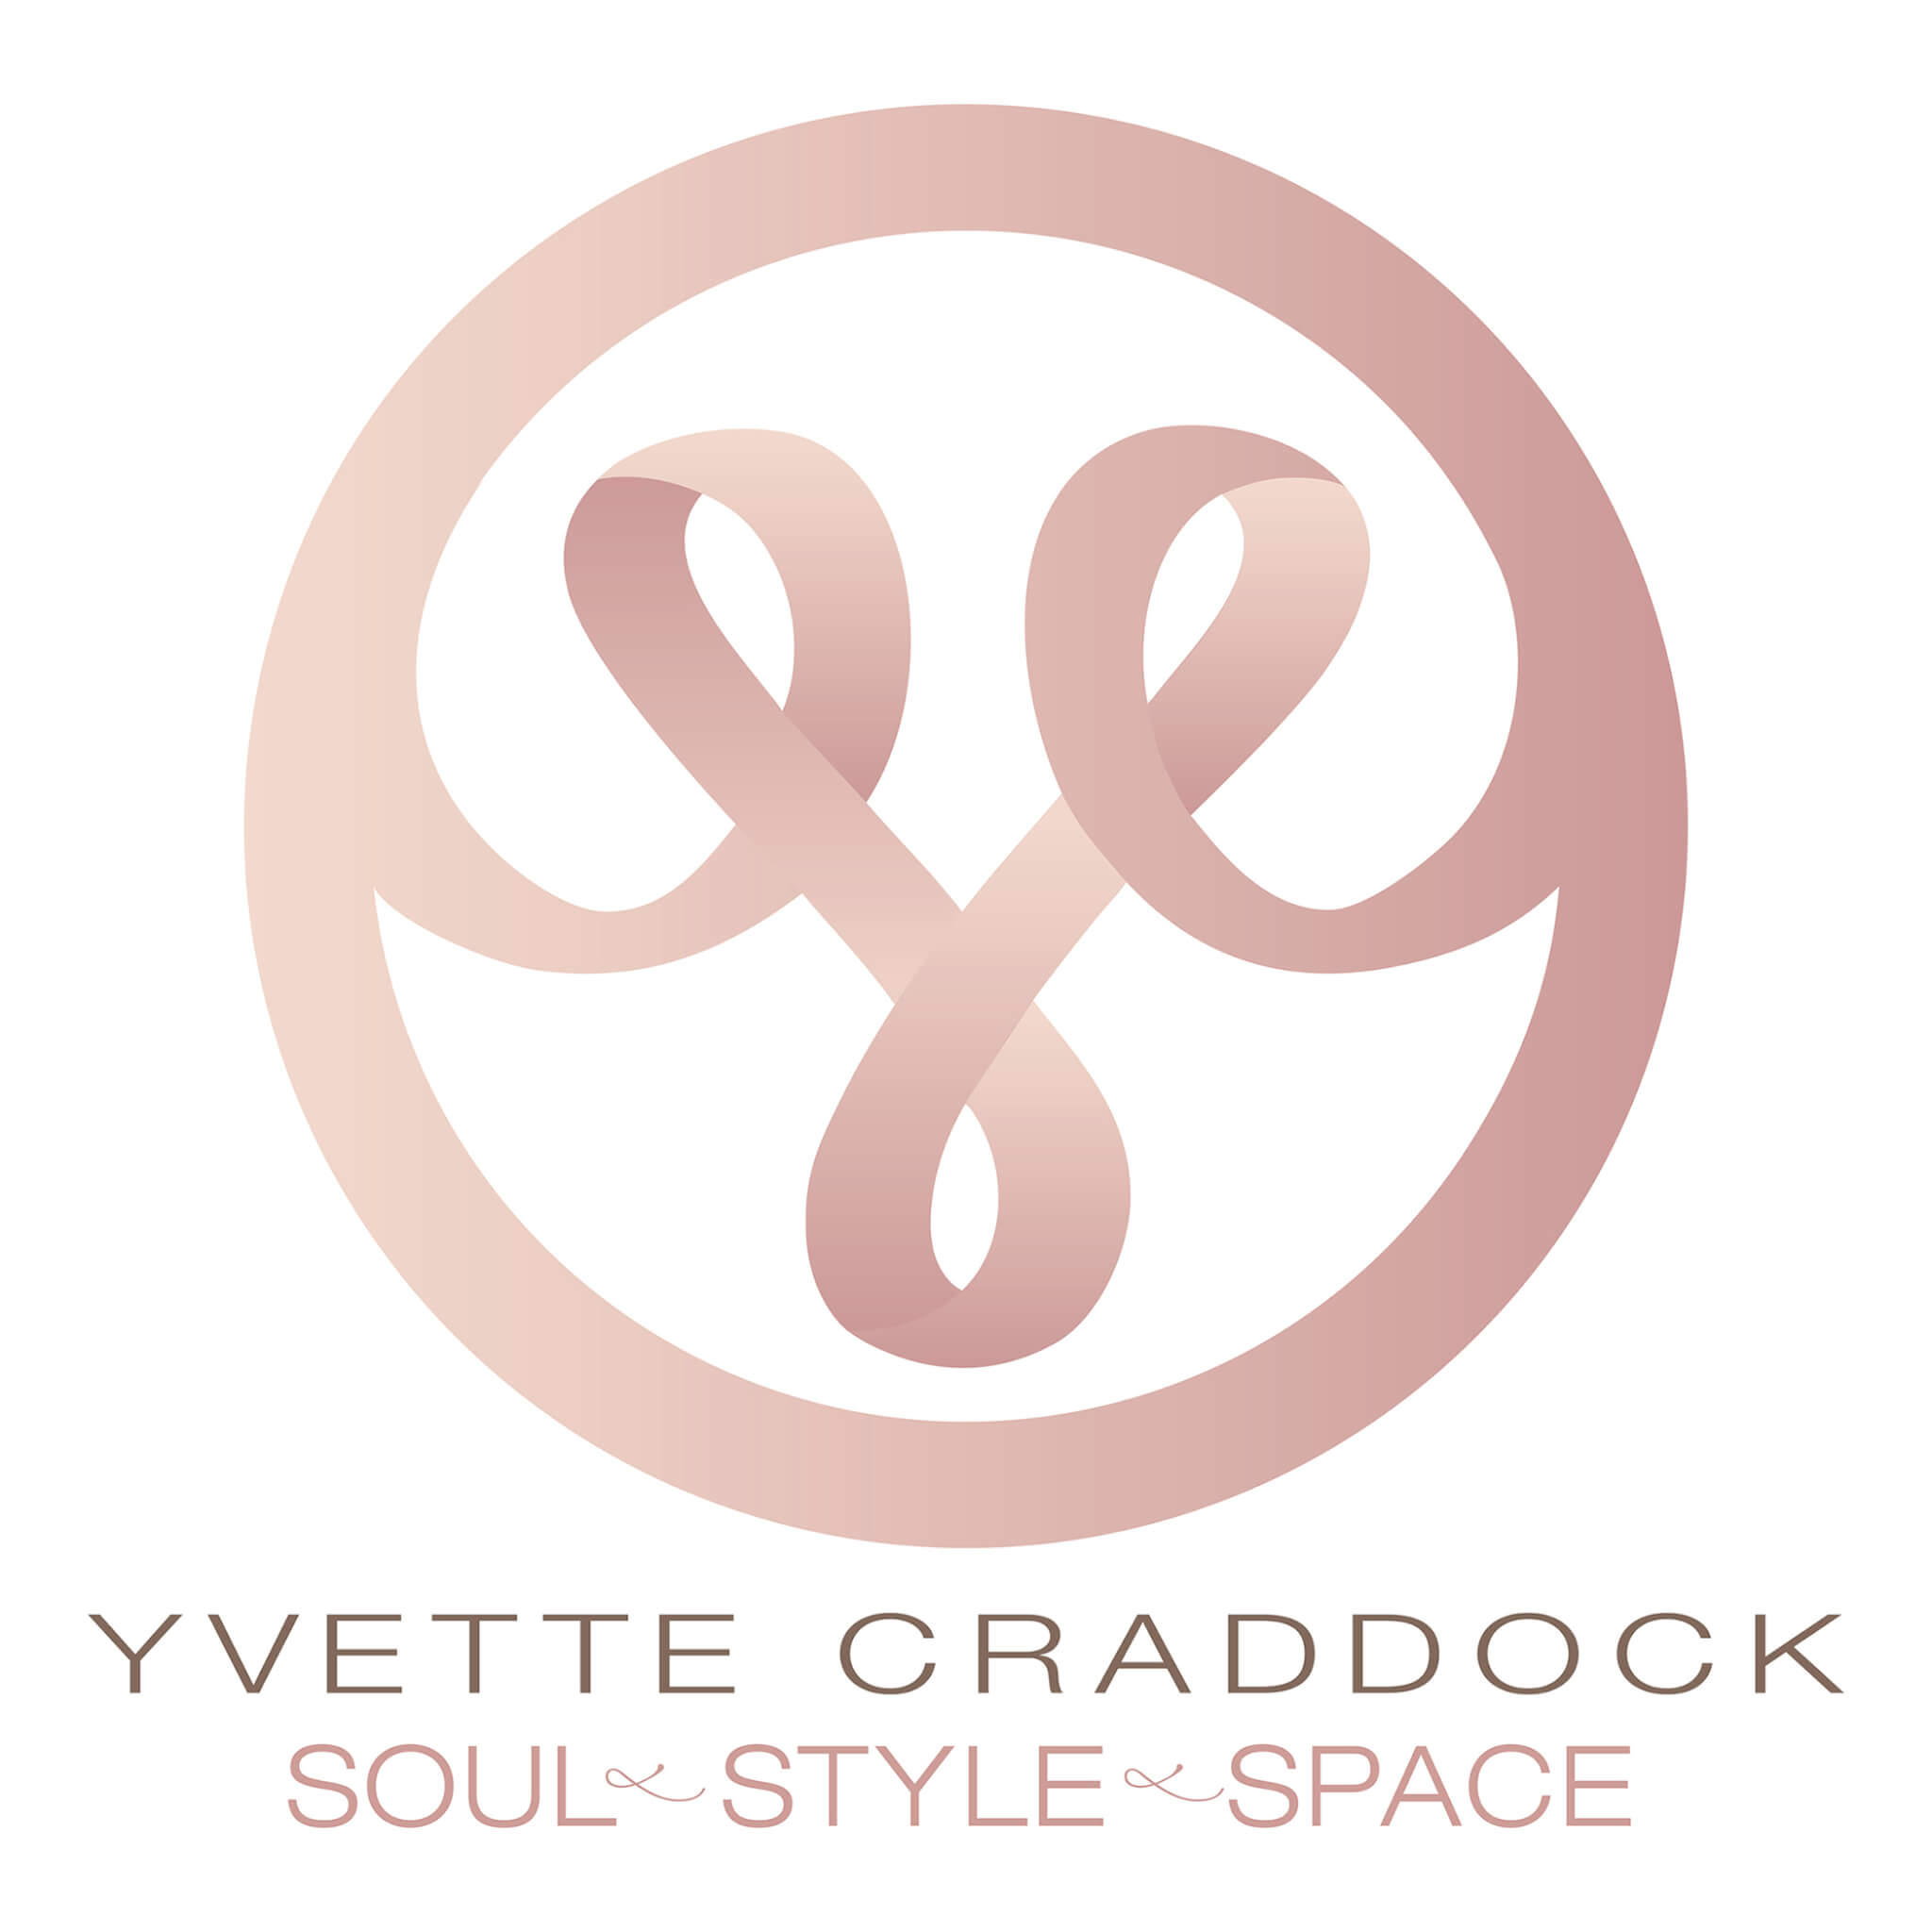 Yvette Craddock Designs - Distinctive Immersive Experiences